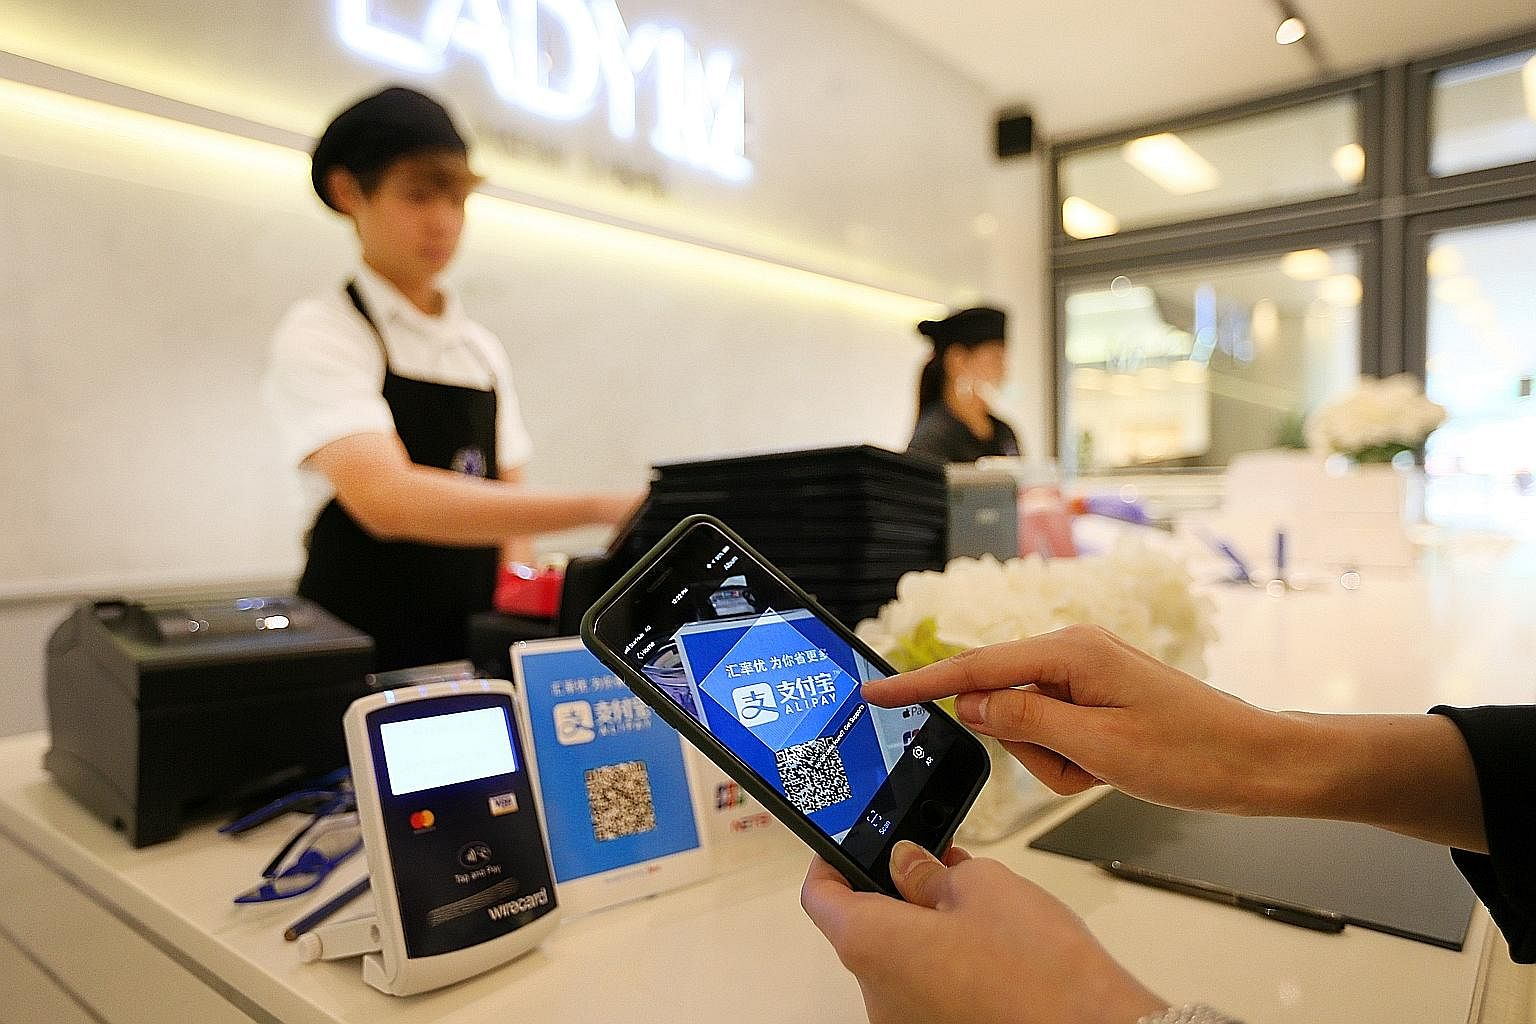 Cake cafe Lady M, whose outlets at South Beach and Scotts Square are cashless, has seen shorter billing and waiting times for customers, among other benefits, after accepting only non-cash payment methods like Alipay.